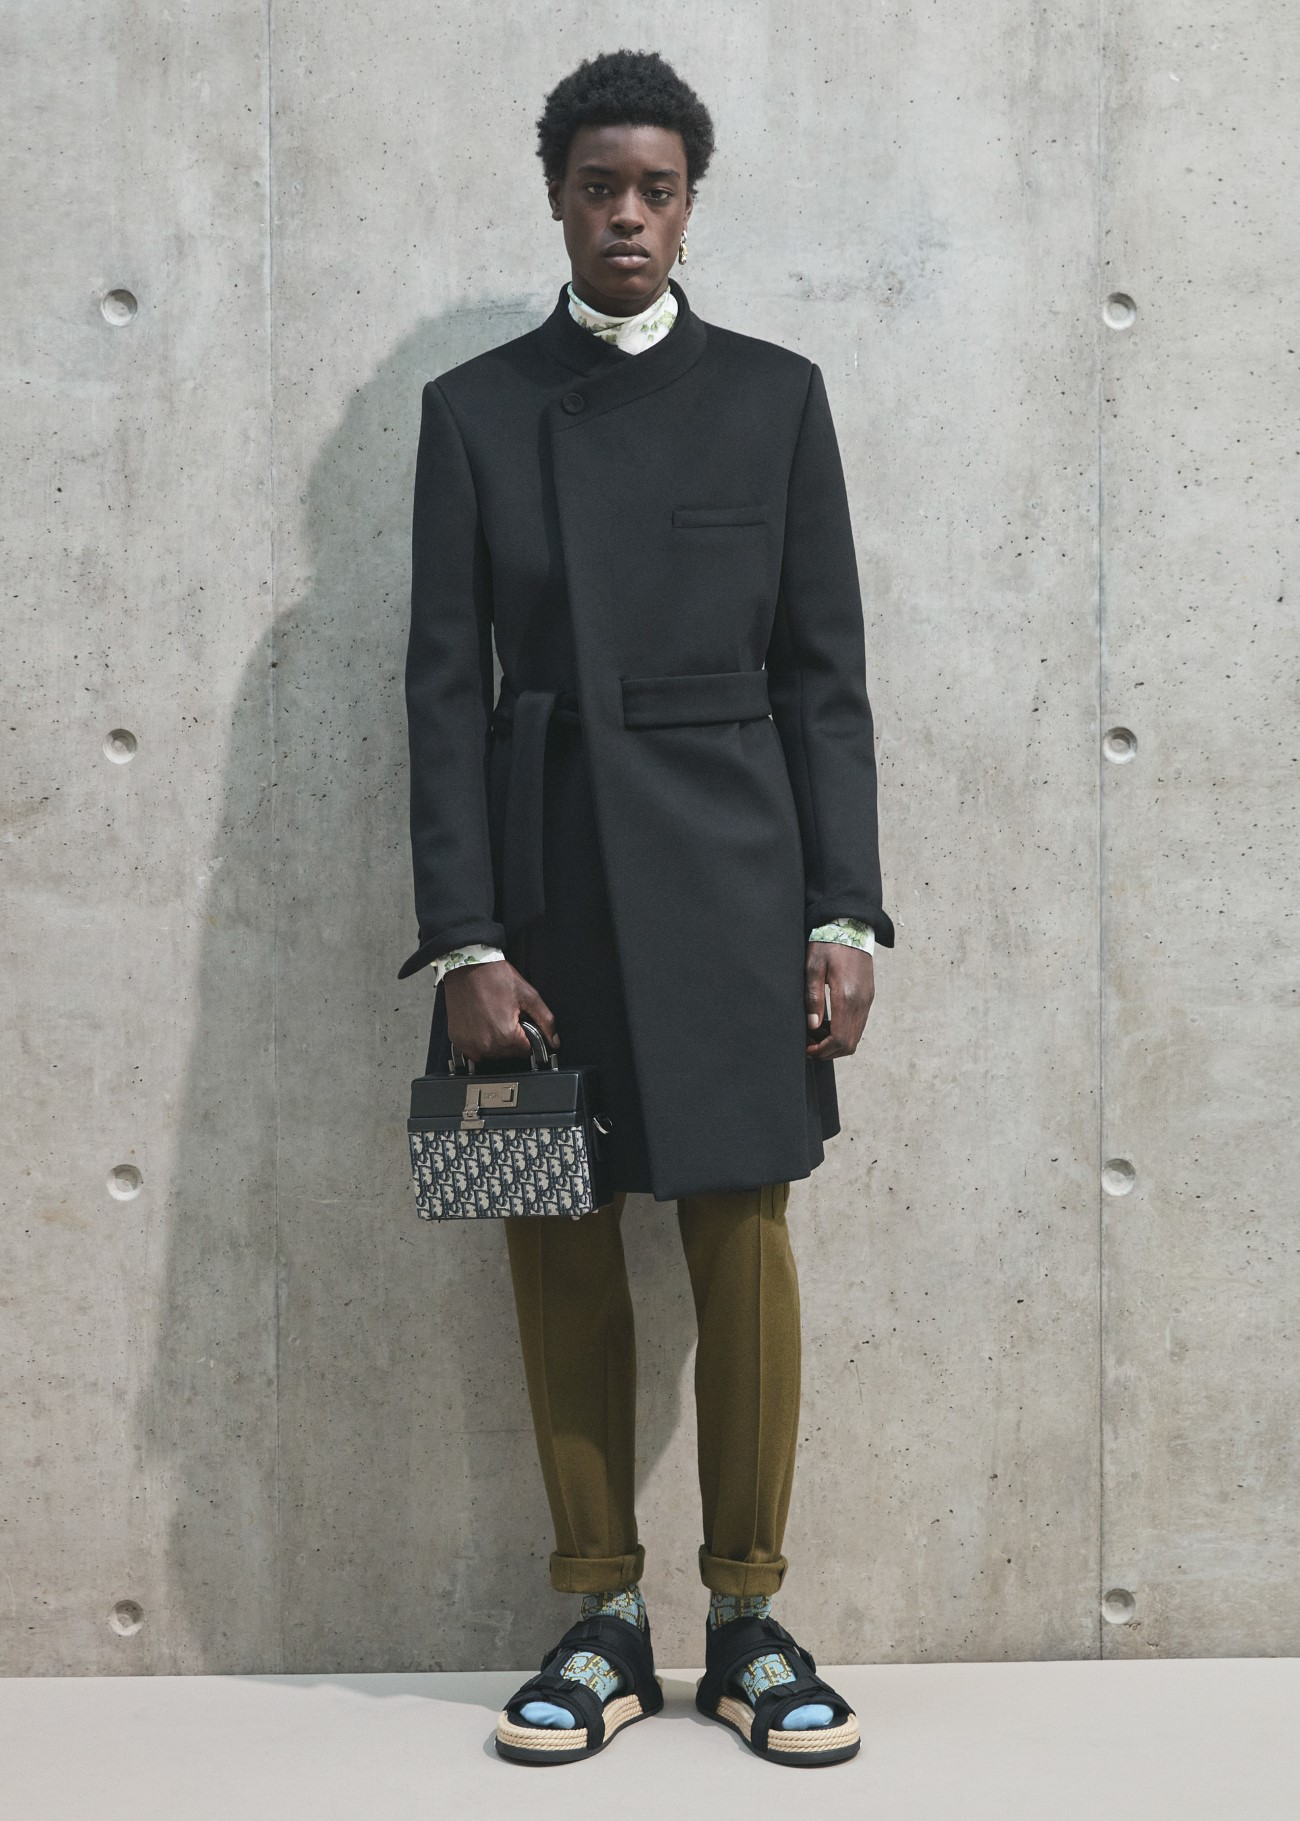 Dior Men - Printemps-Été 2021 - Paris Fashion Week